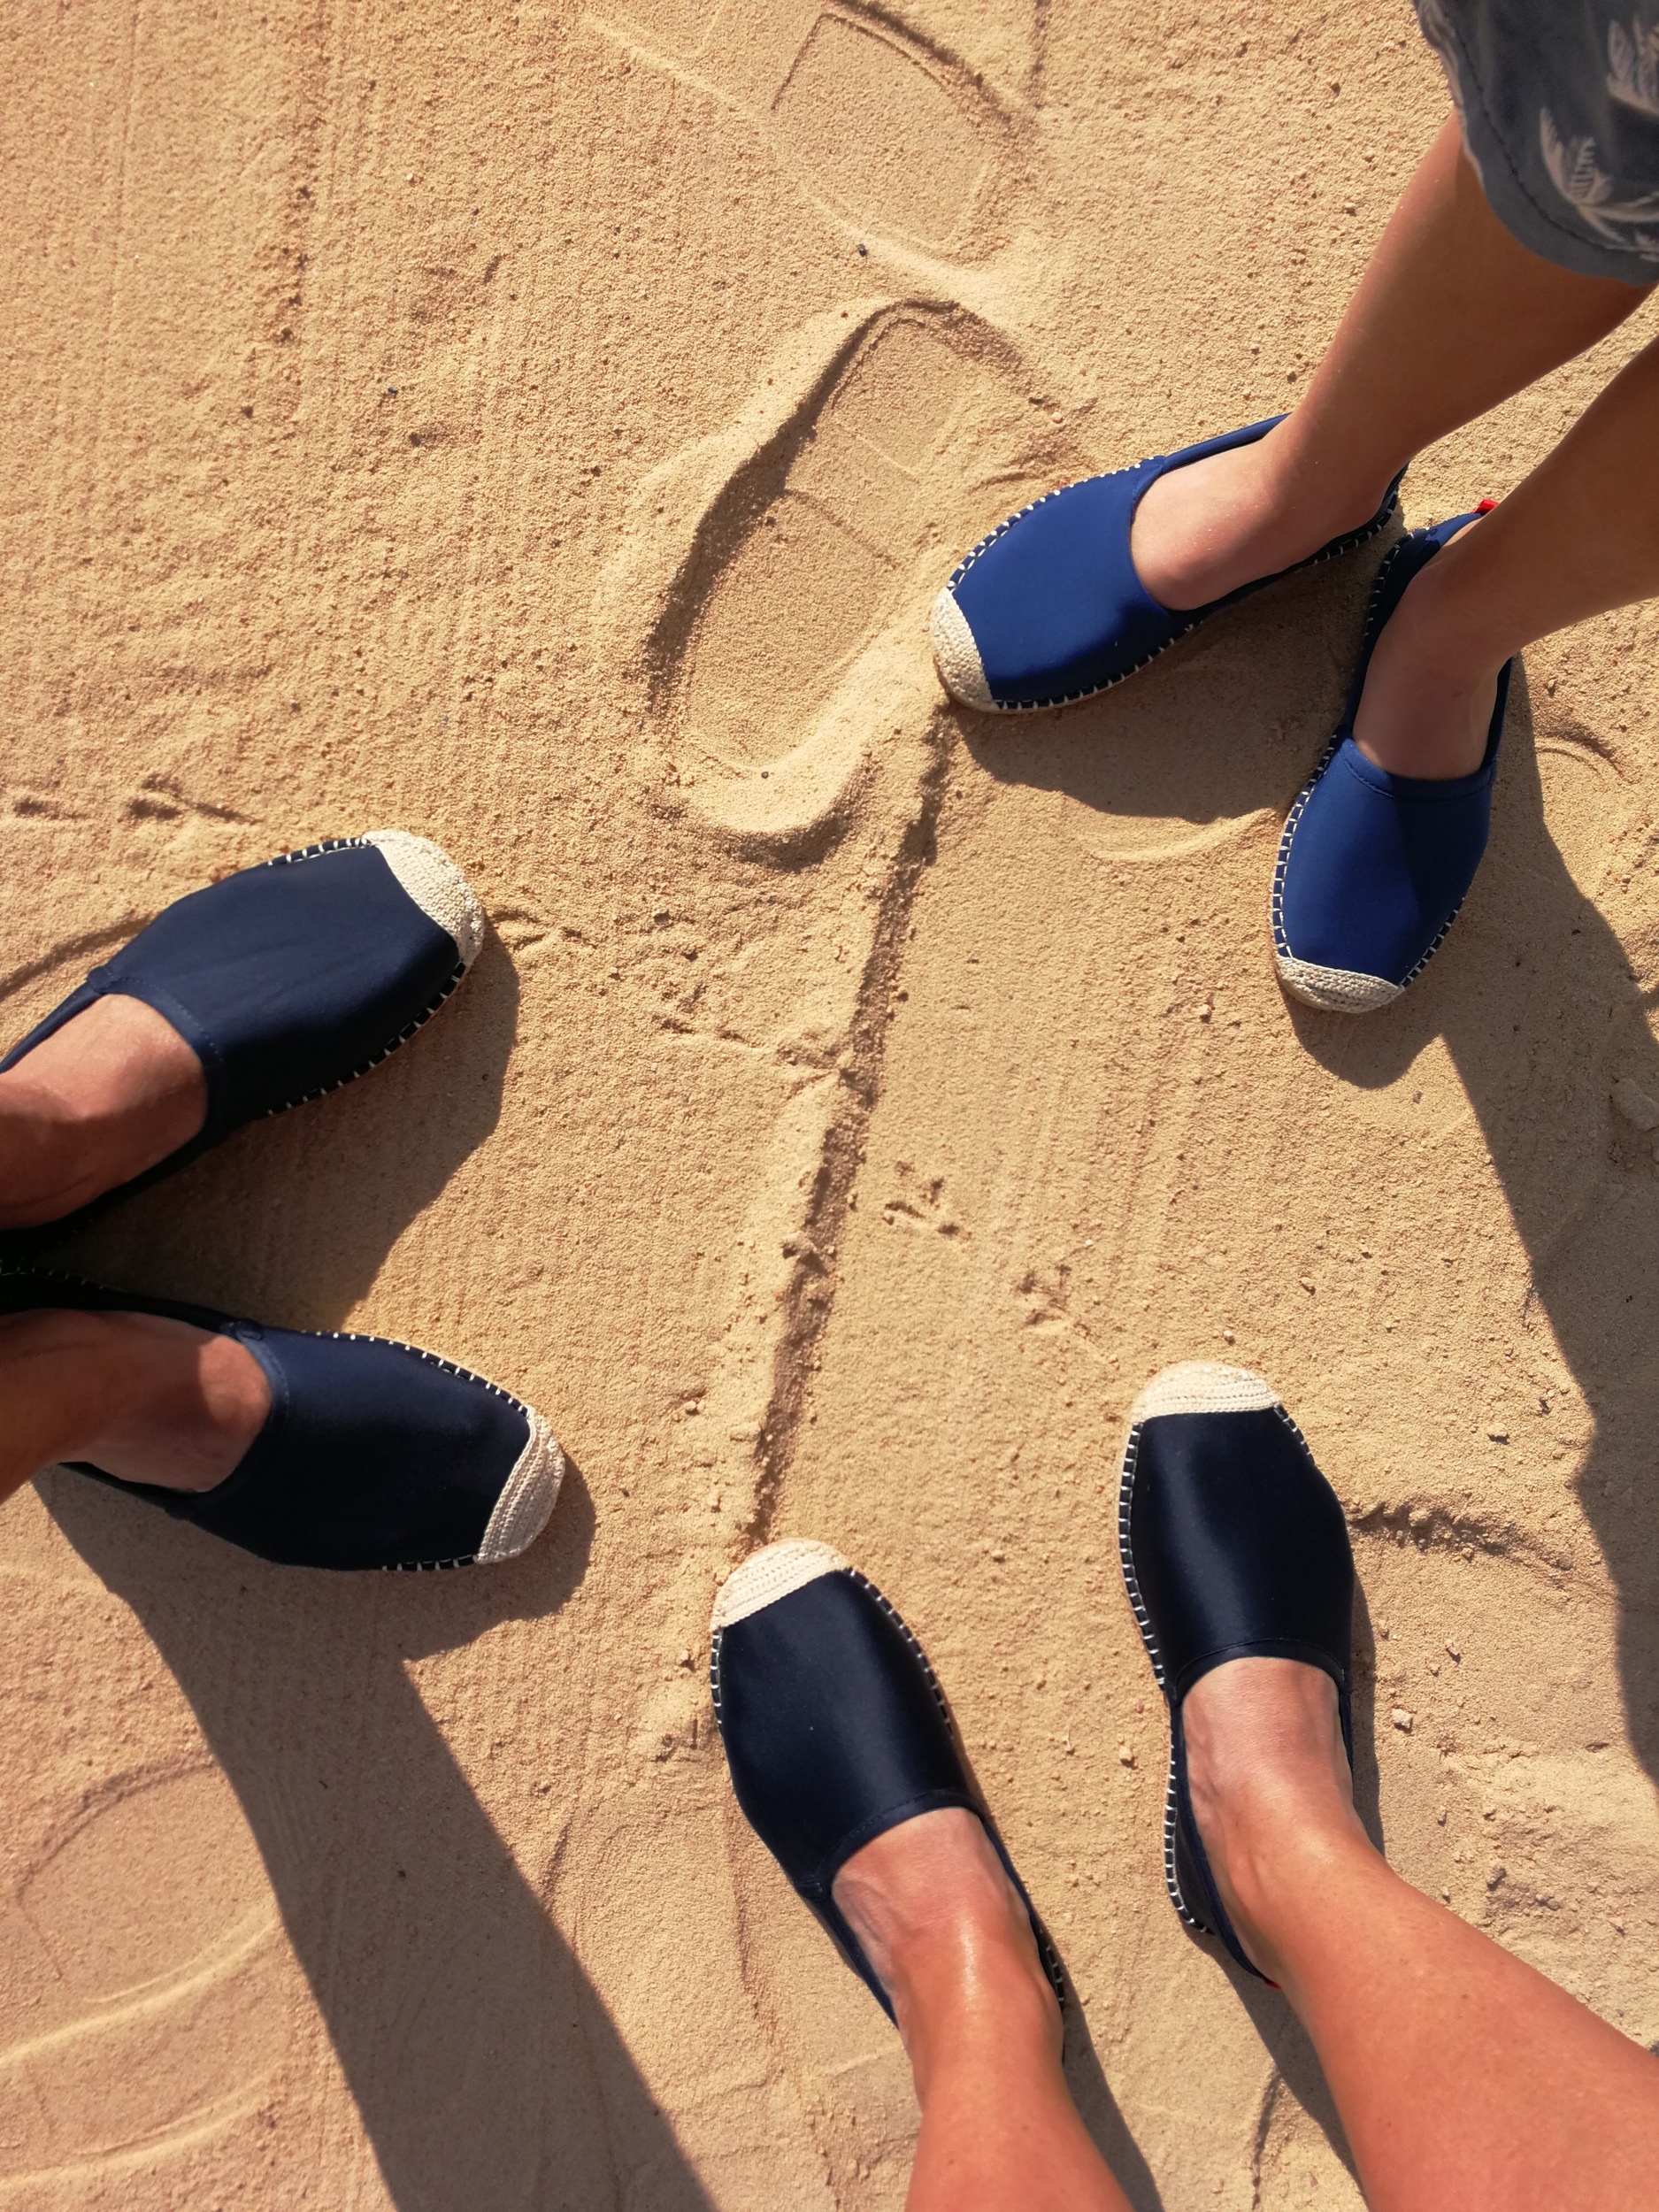 b413d2d0a13c Sea Star Beachcomber  The Original Water-Friendly Espadrille. A classic  espadrille design re-imagined with a water-friendly neoprene upper and  protective ...